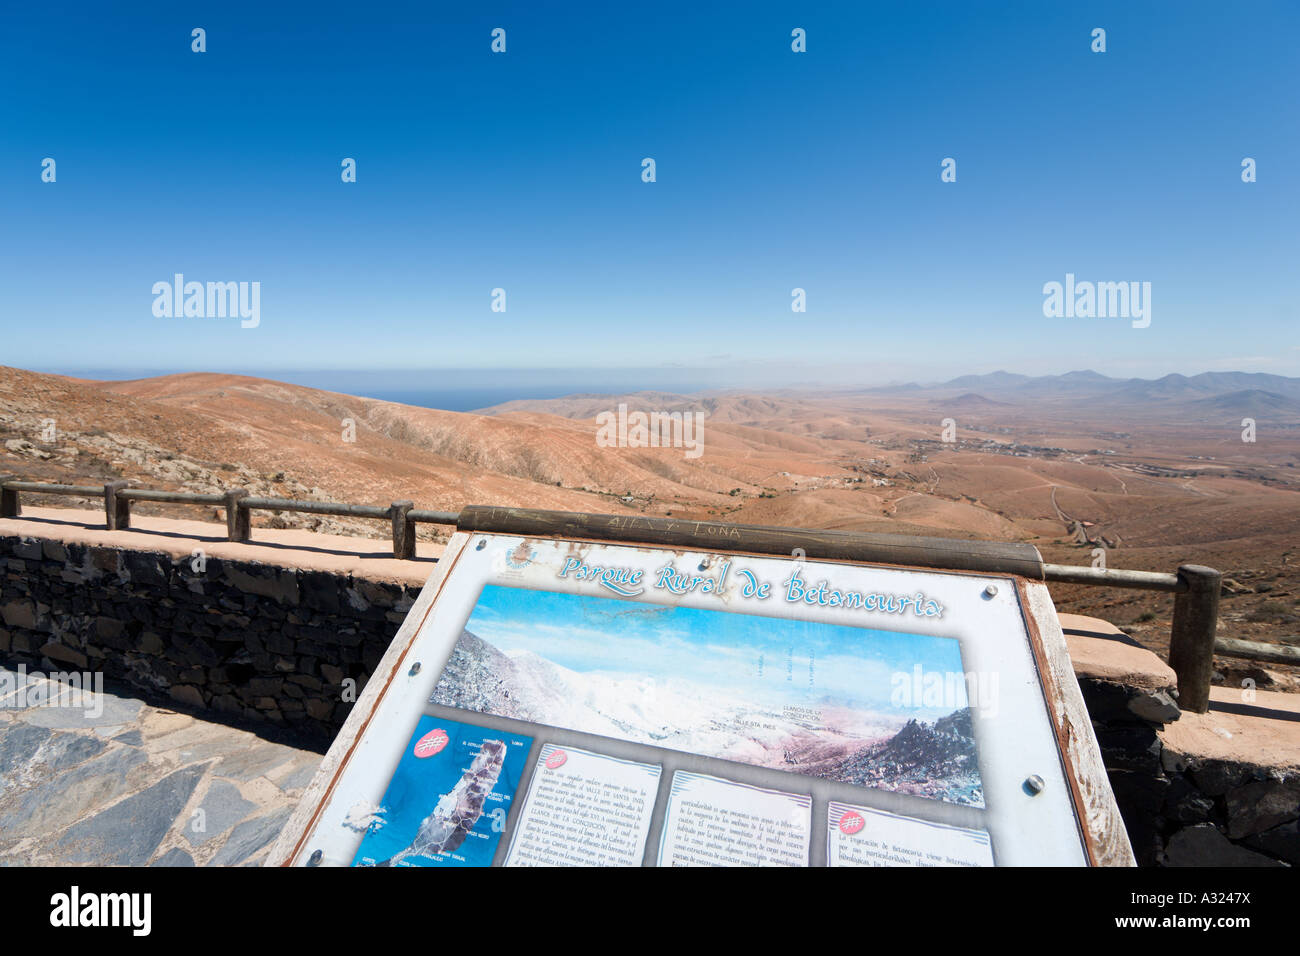 Viewpoint over a typical landscape in Betancuria Rural Park, Fuerteventura, Canary Islands, Spain Stock Photo